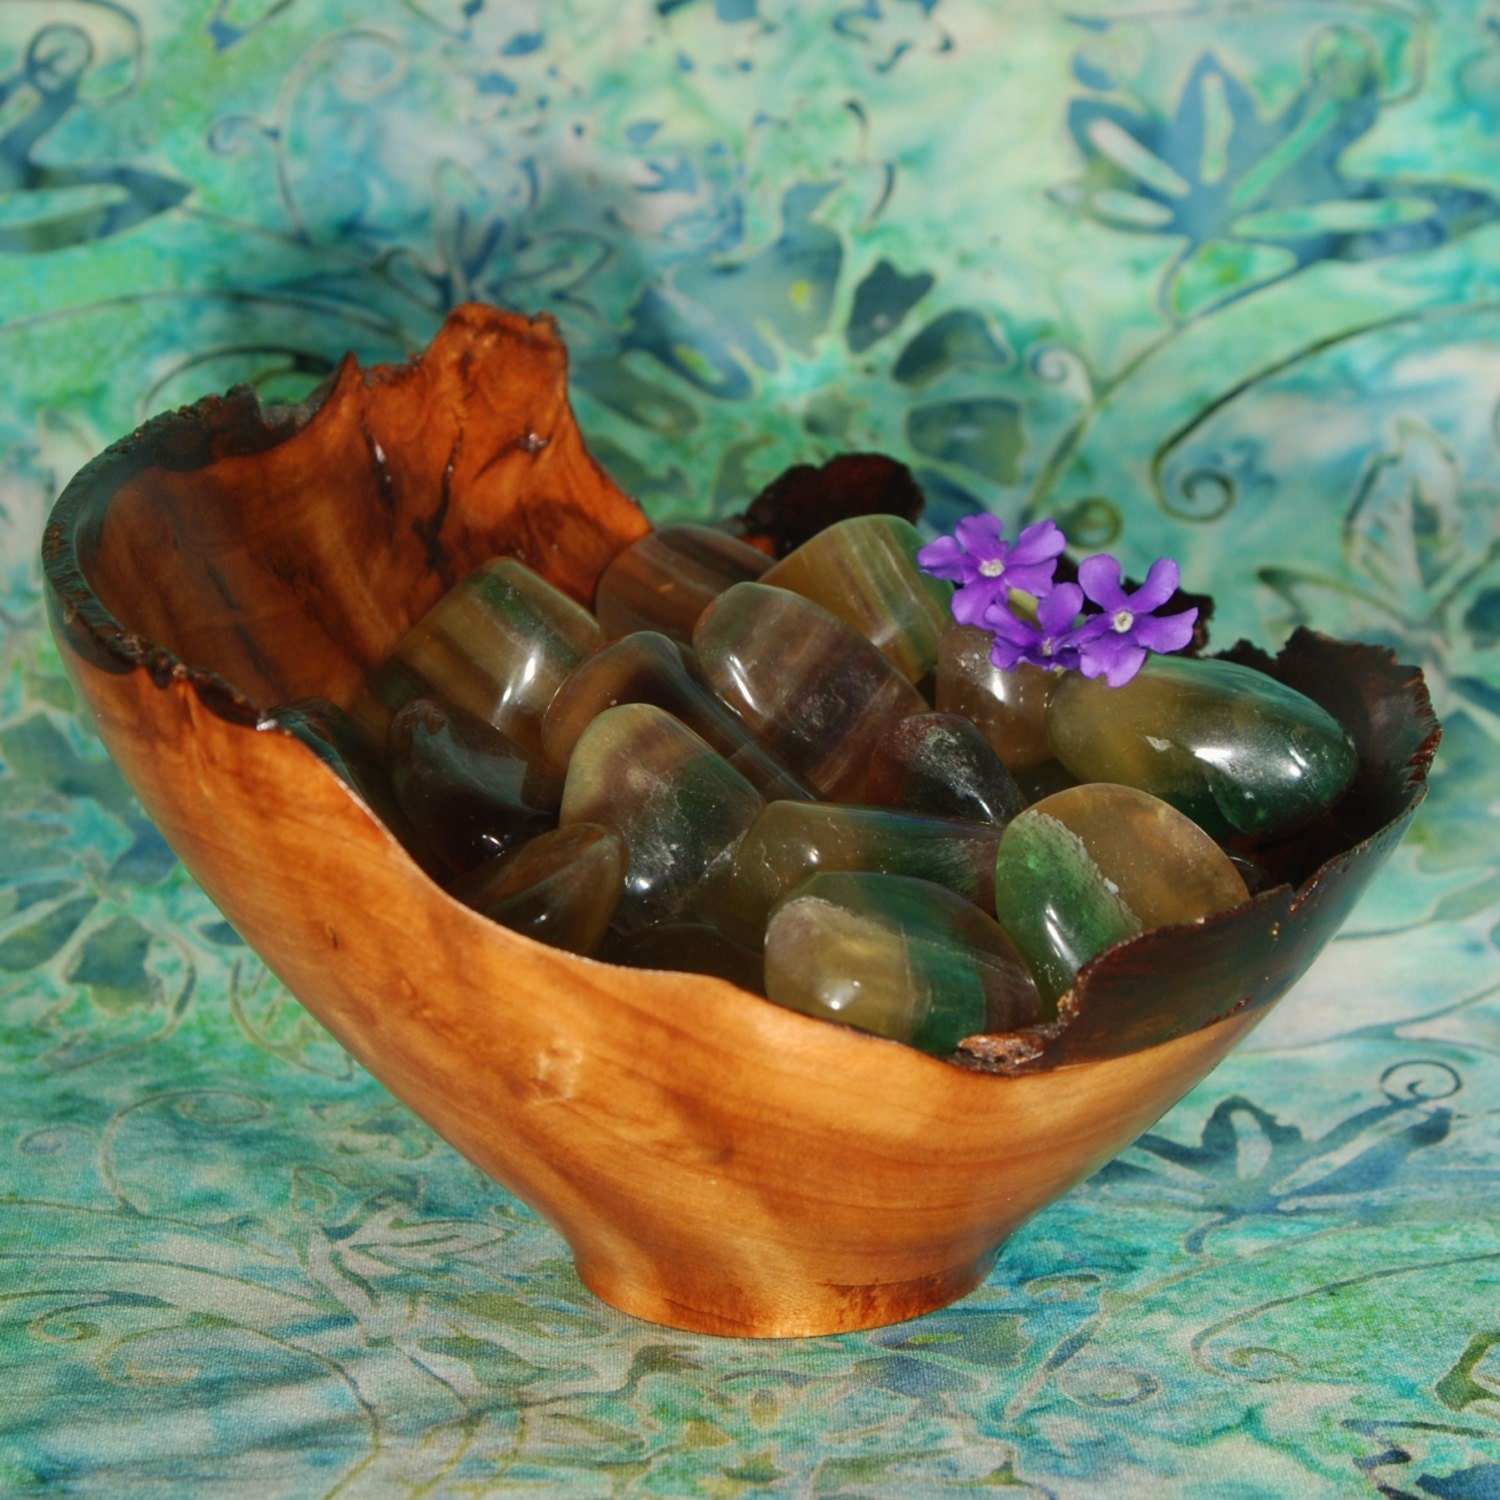 Ethically Sourced 1 JAGUAR STONE 1 Inch Tumbled Stone